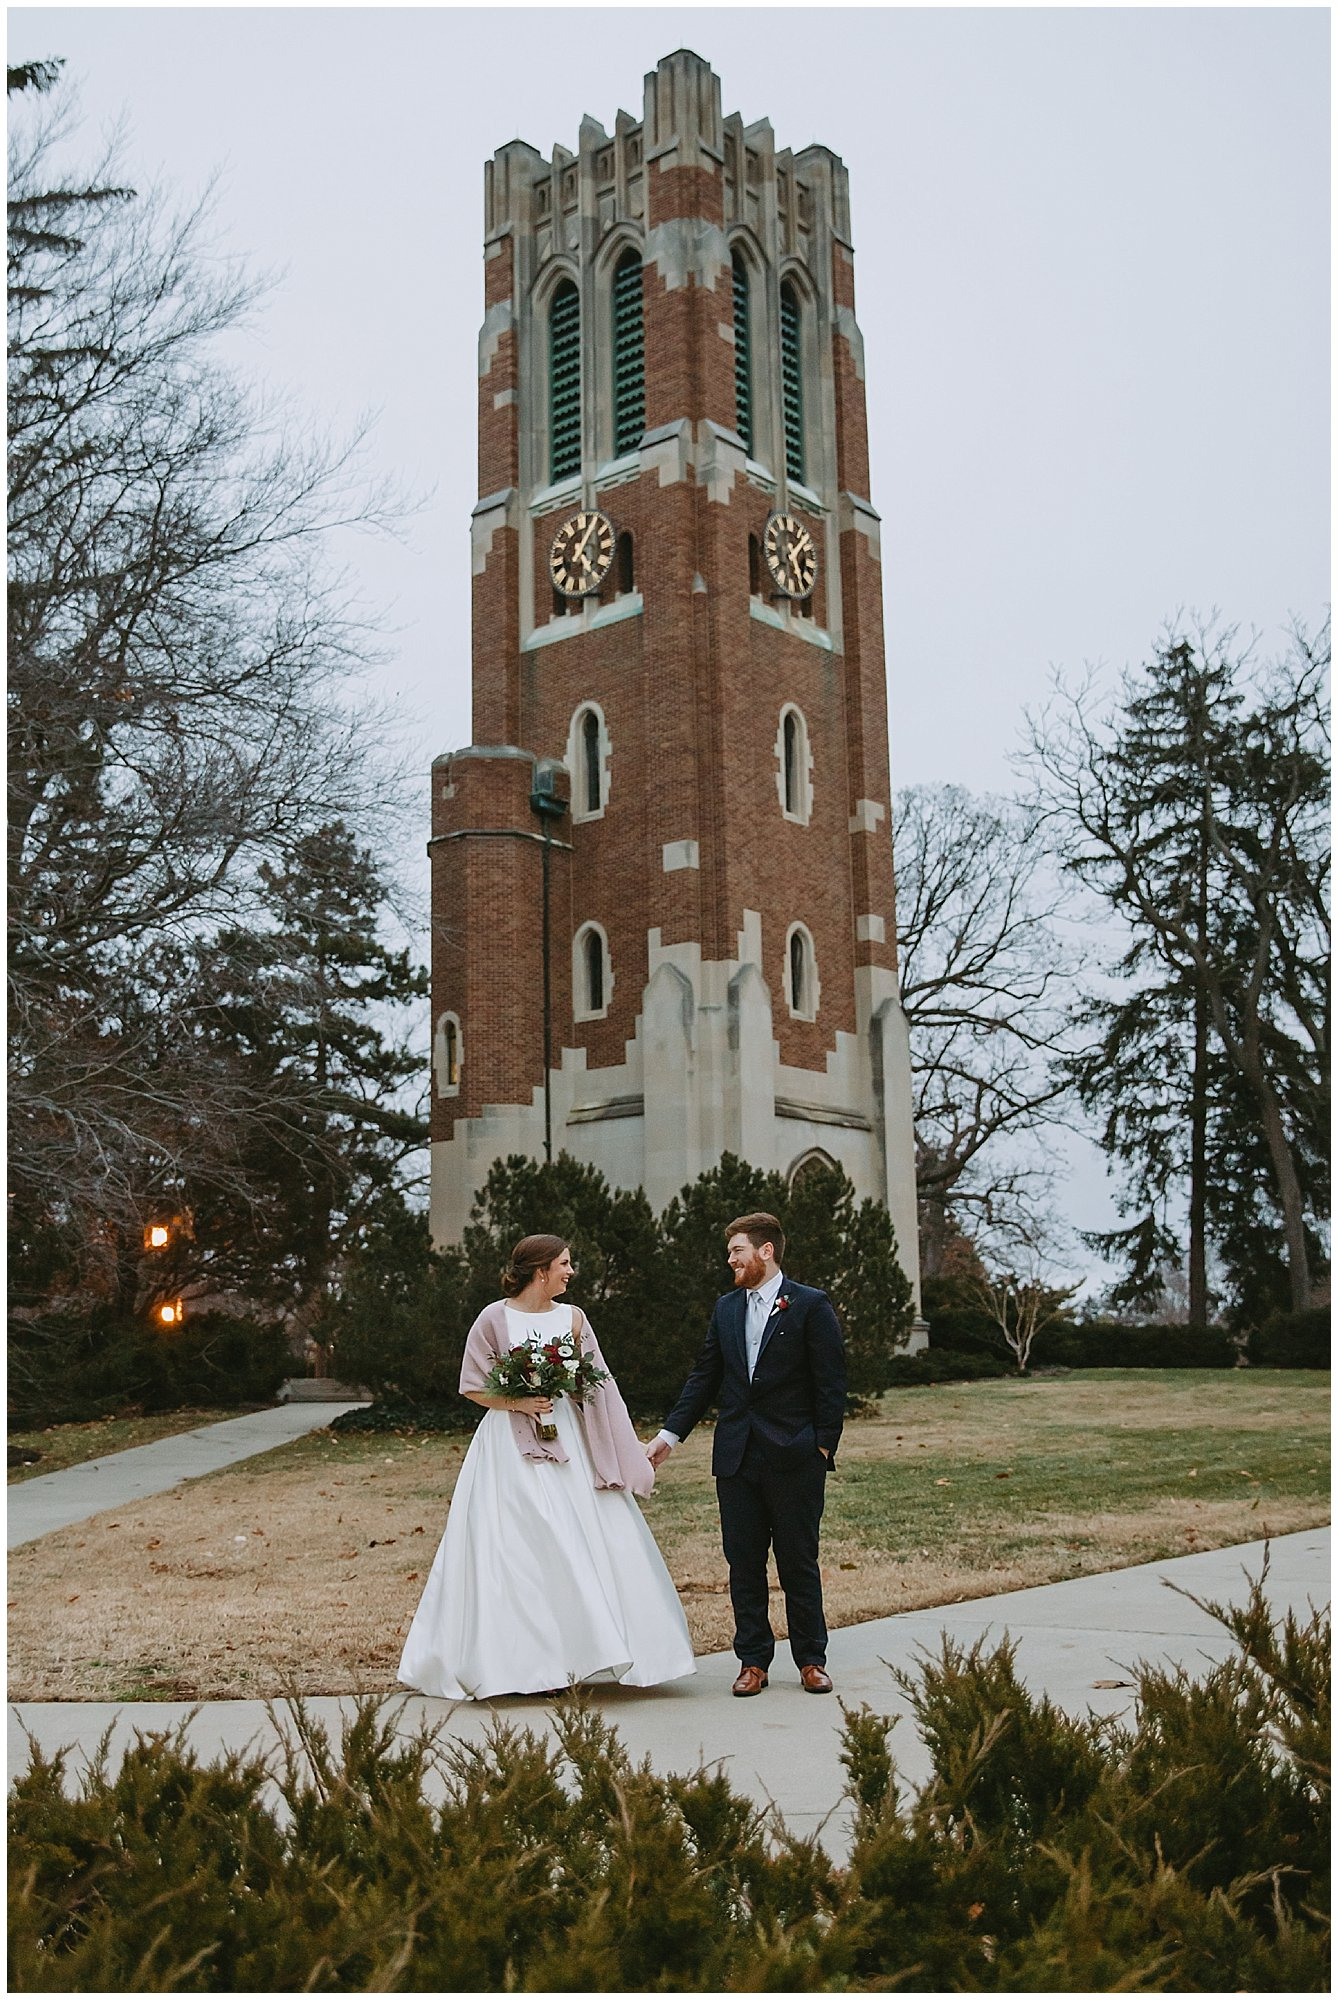 Beaumont Tower Bride and Groom